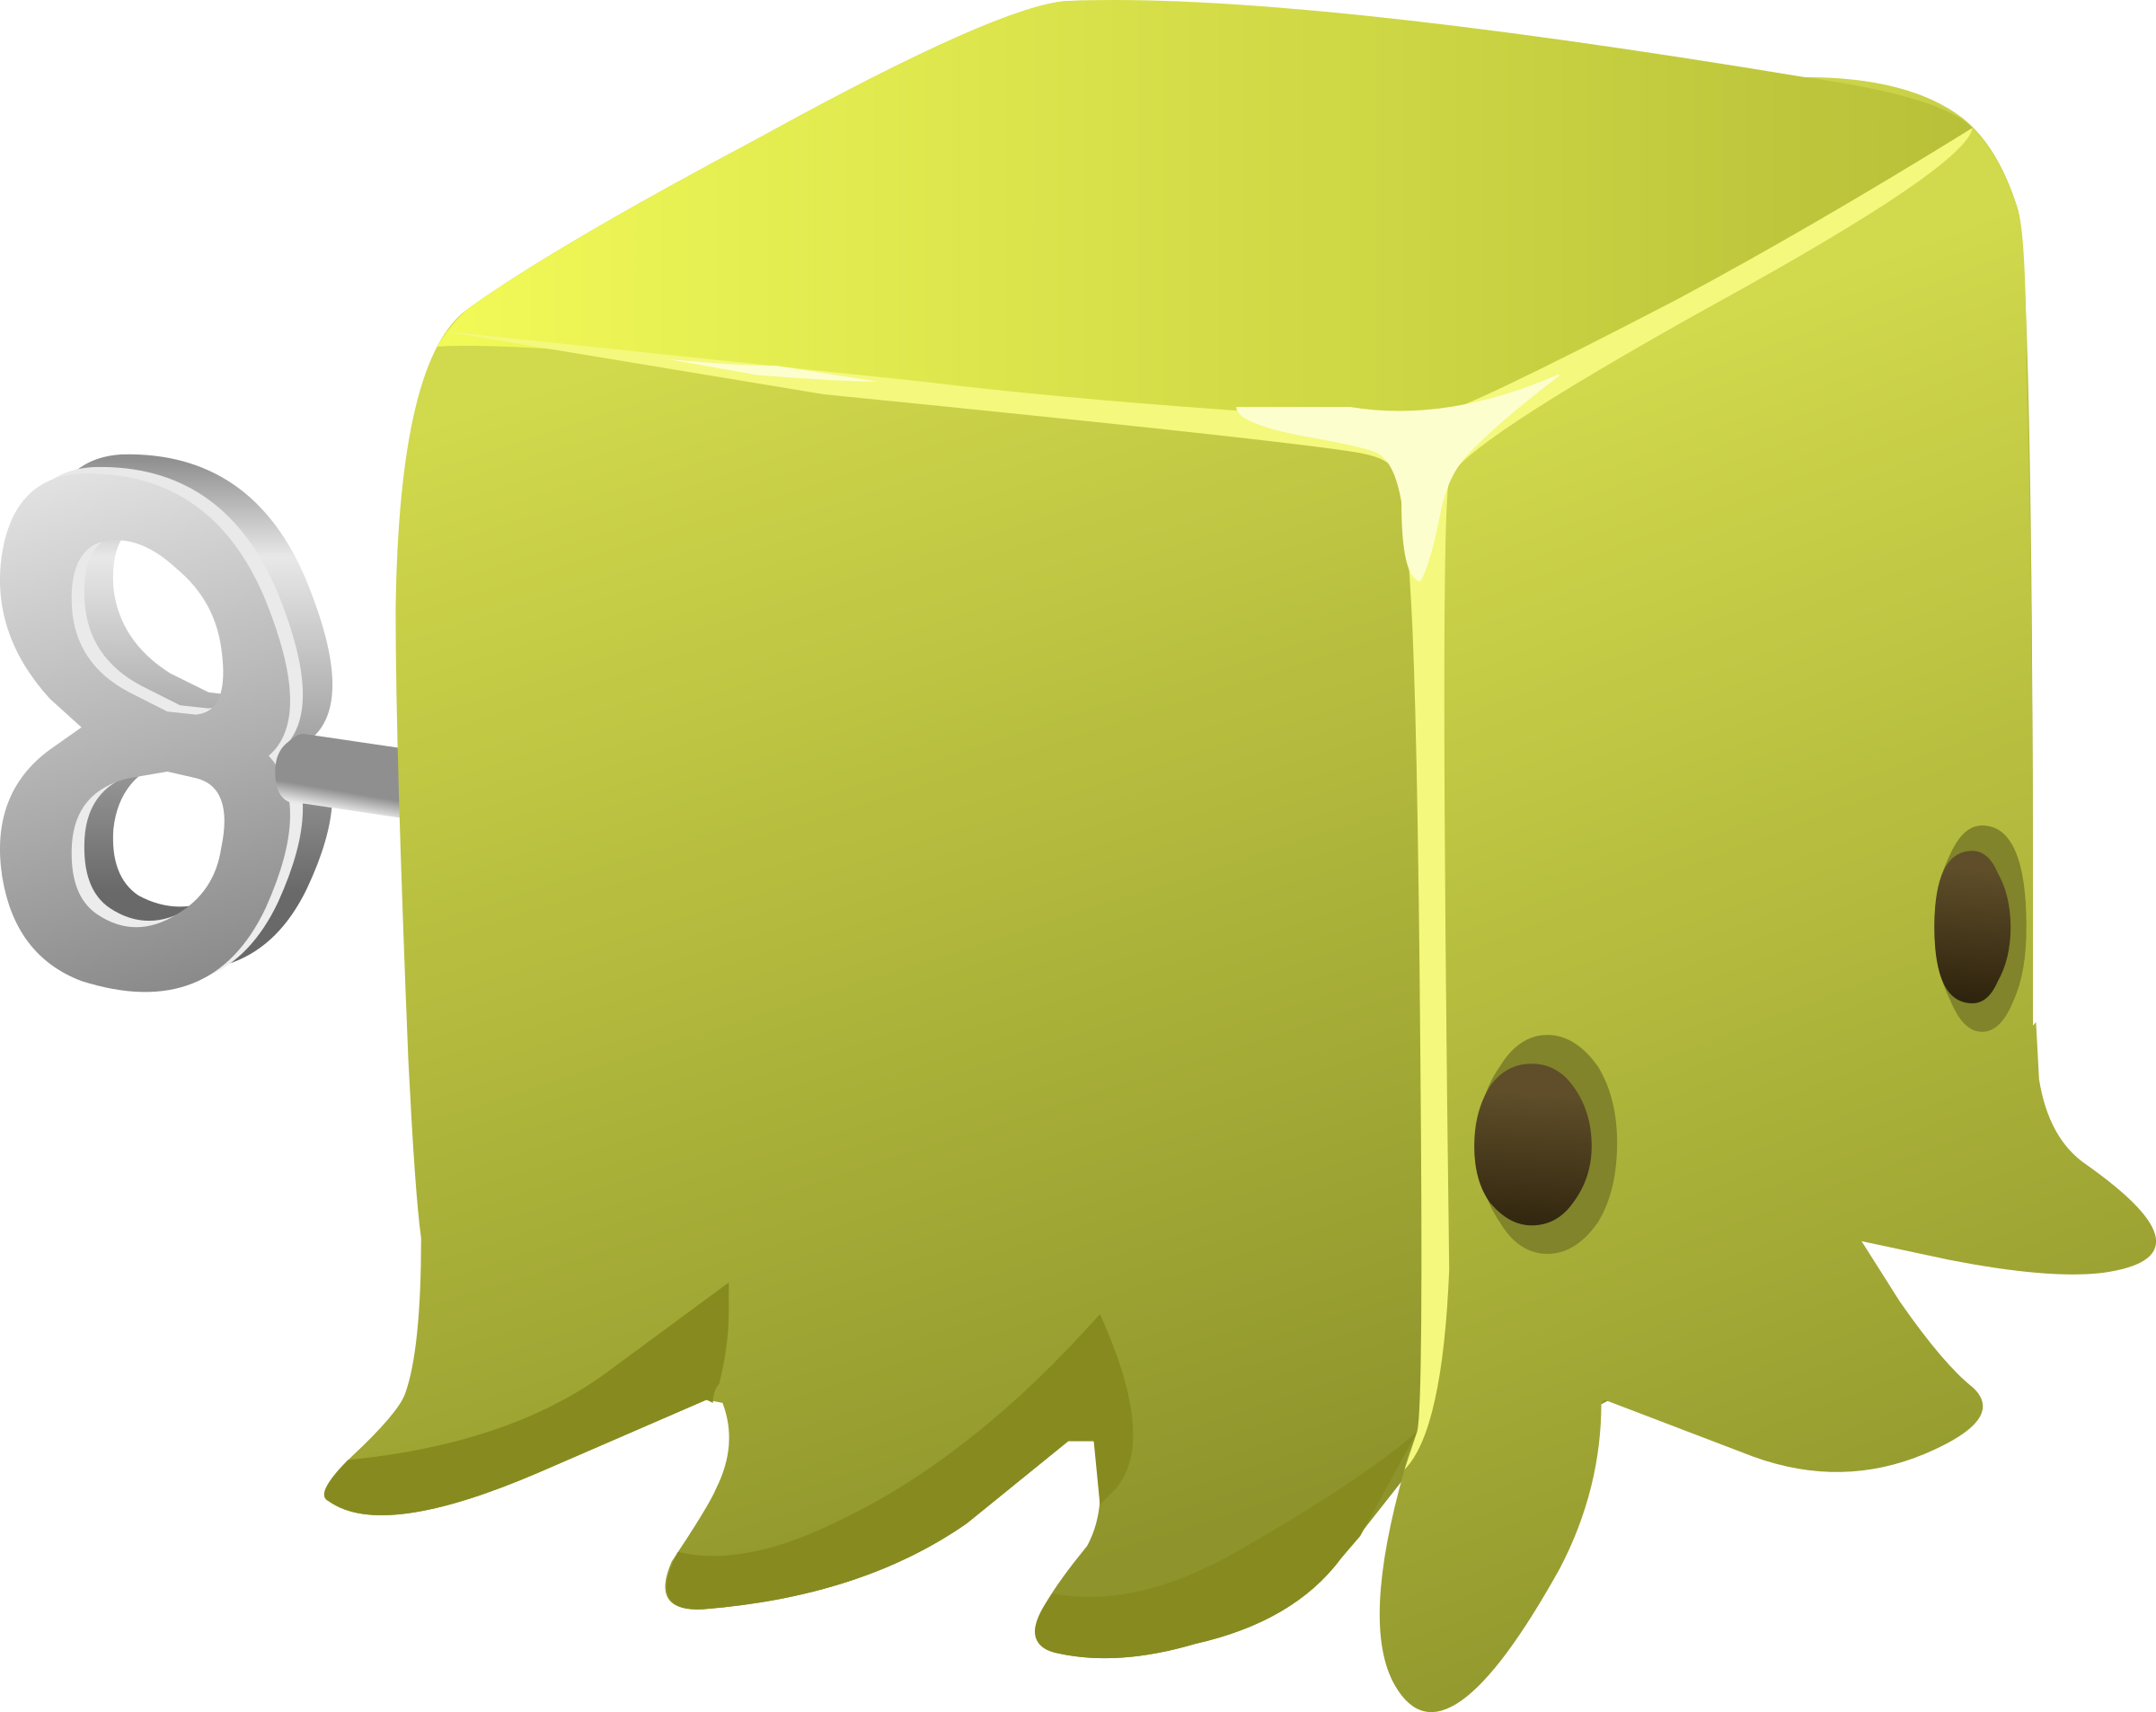 Glitch clipart yellow (PNG) BIG IMAGE Squid Cubimal